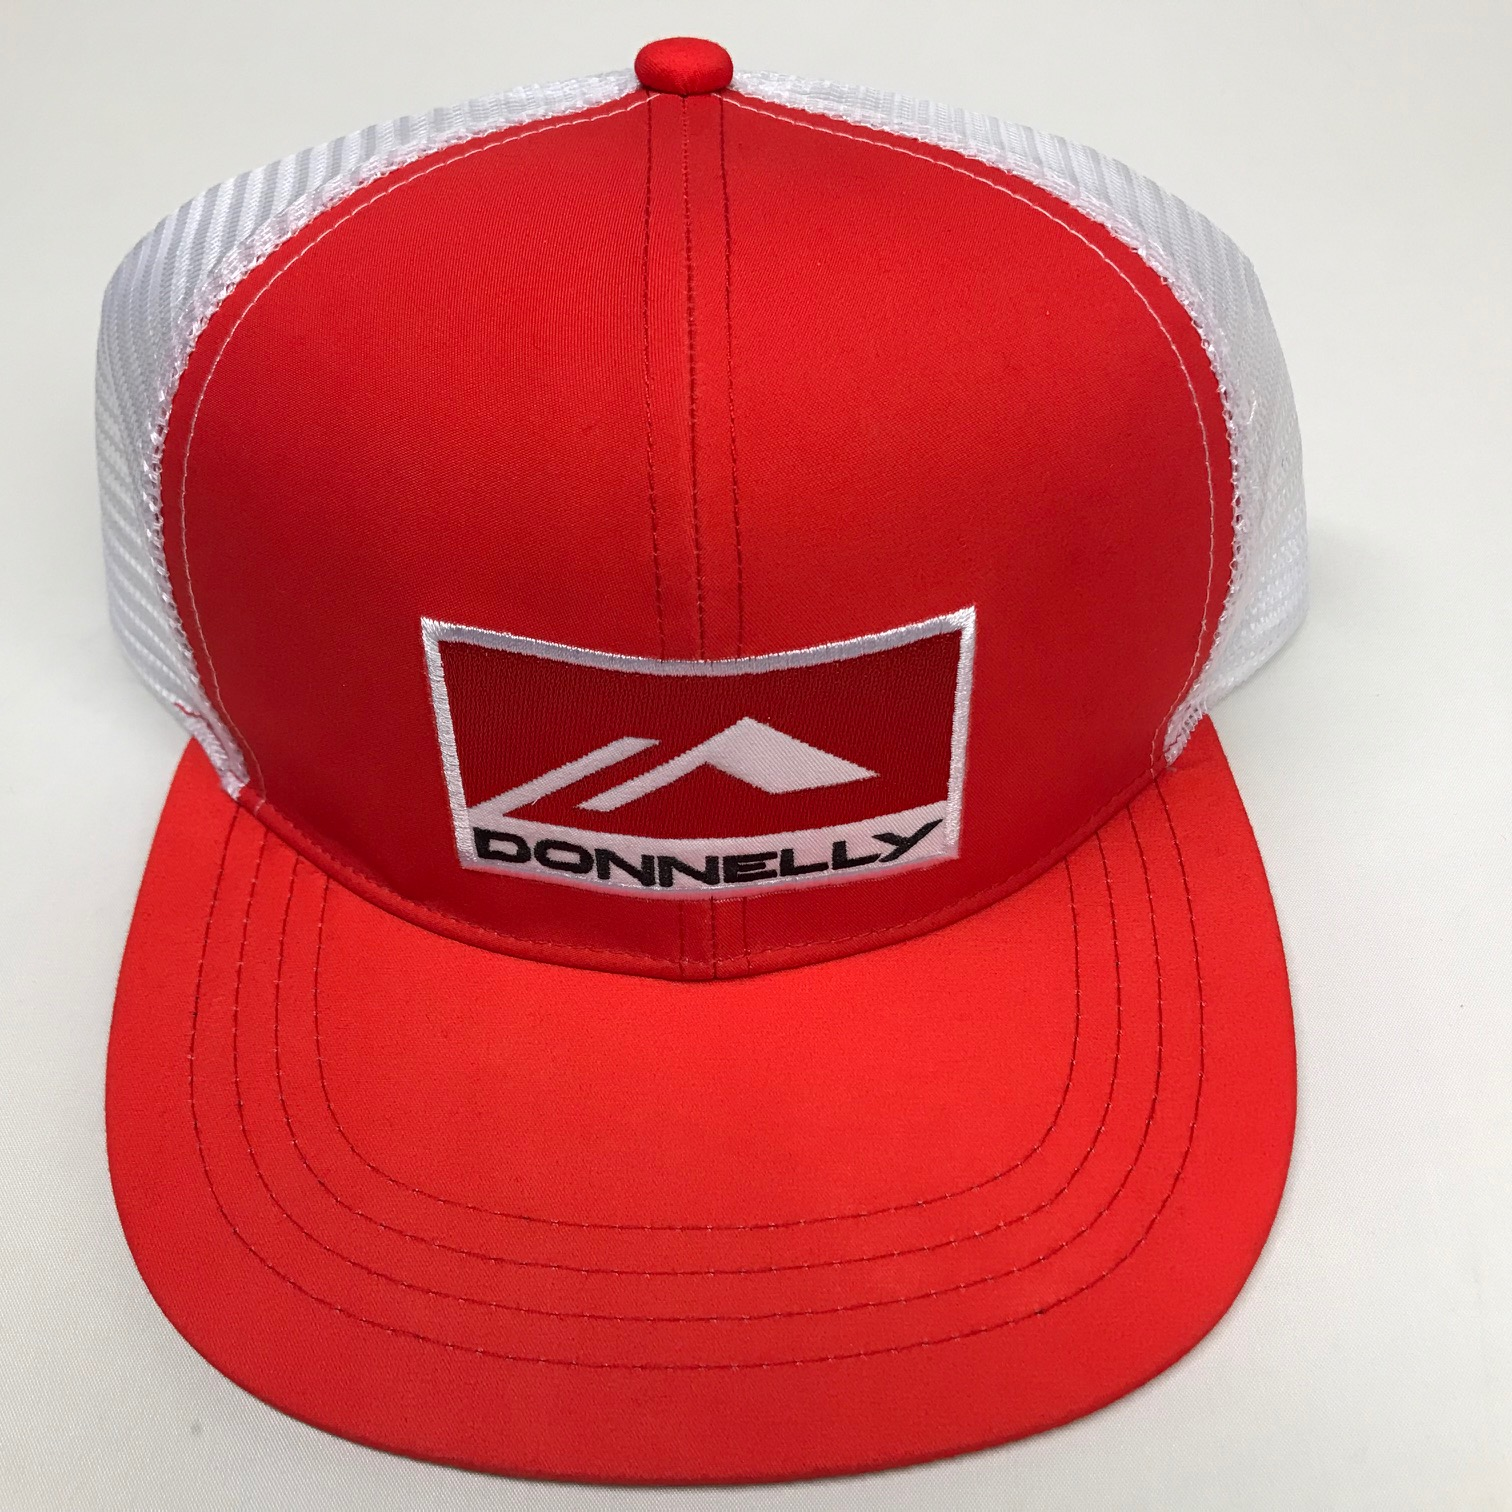 Donnelly Trucker Hat, Flat Bill, Red